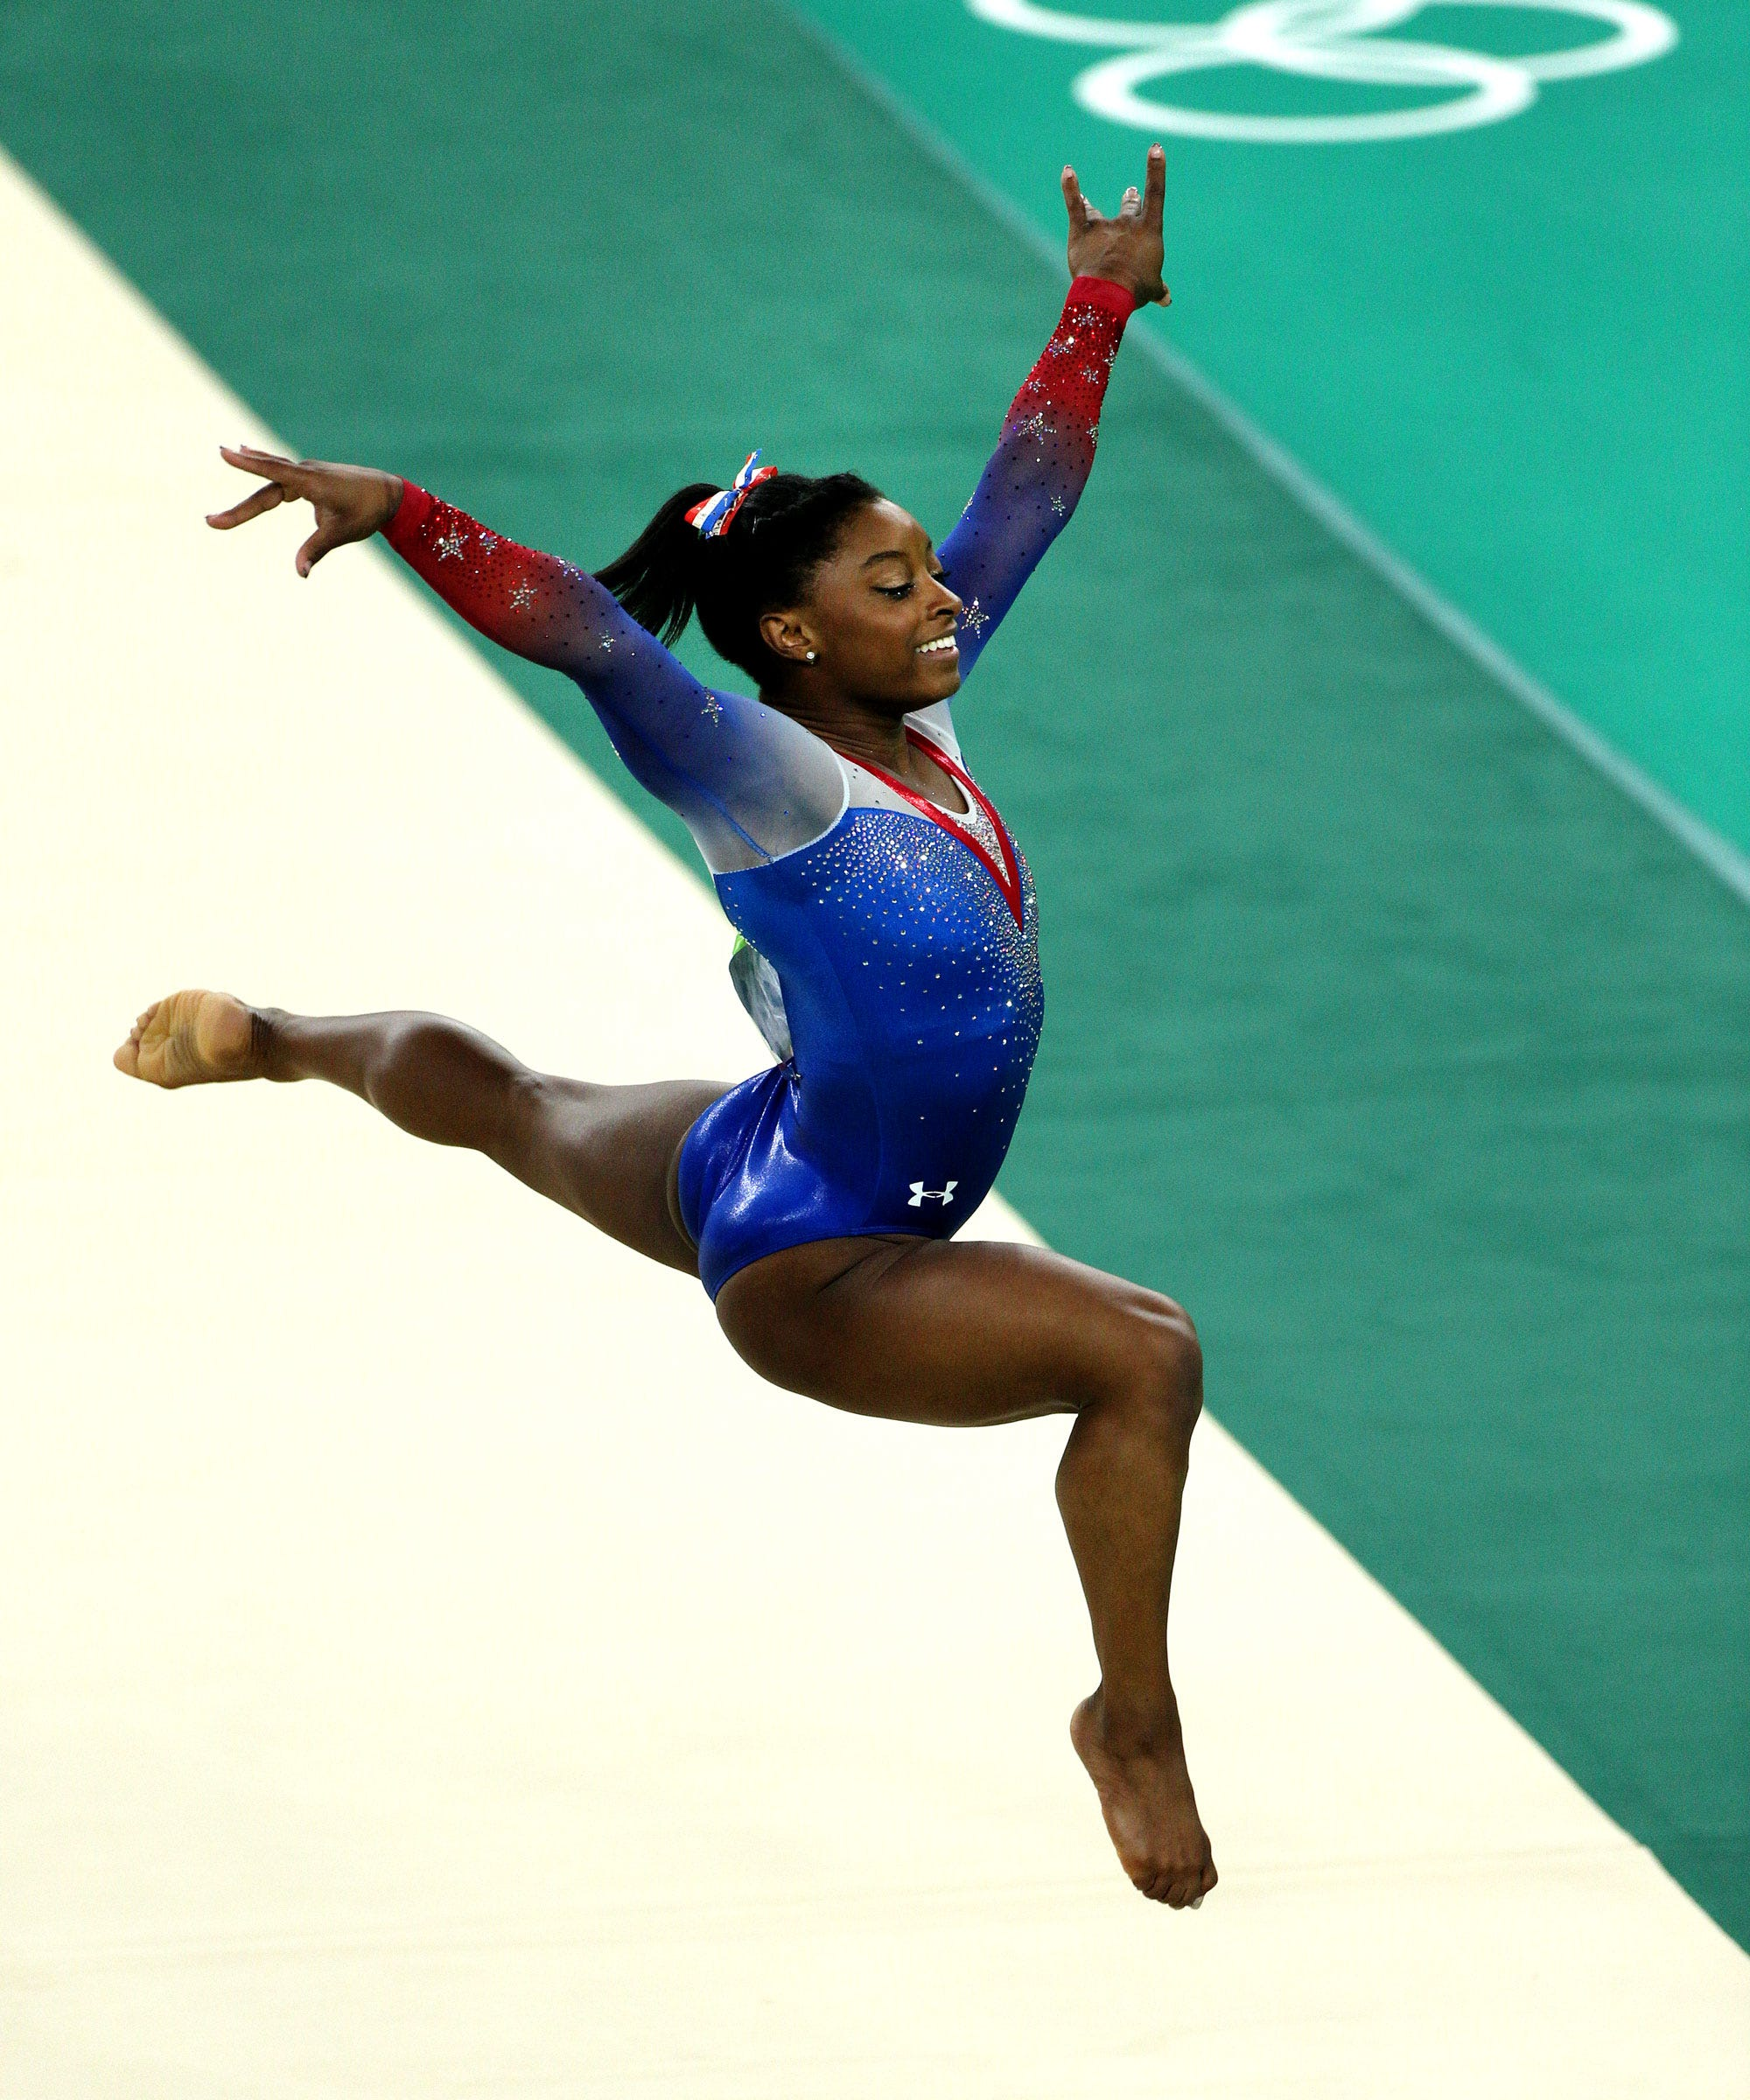 Simone Biles Olympic Gold Medal Win Floor Routine Video